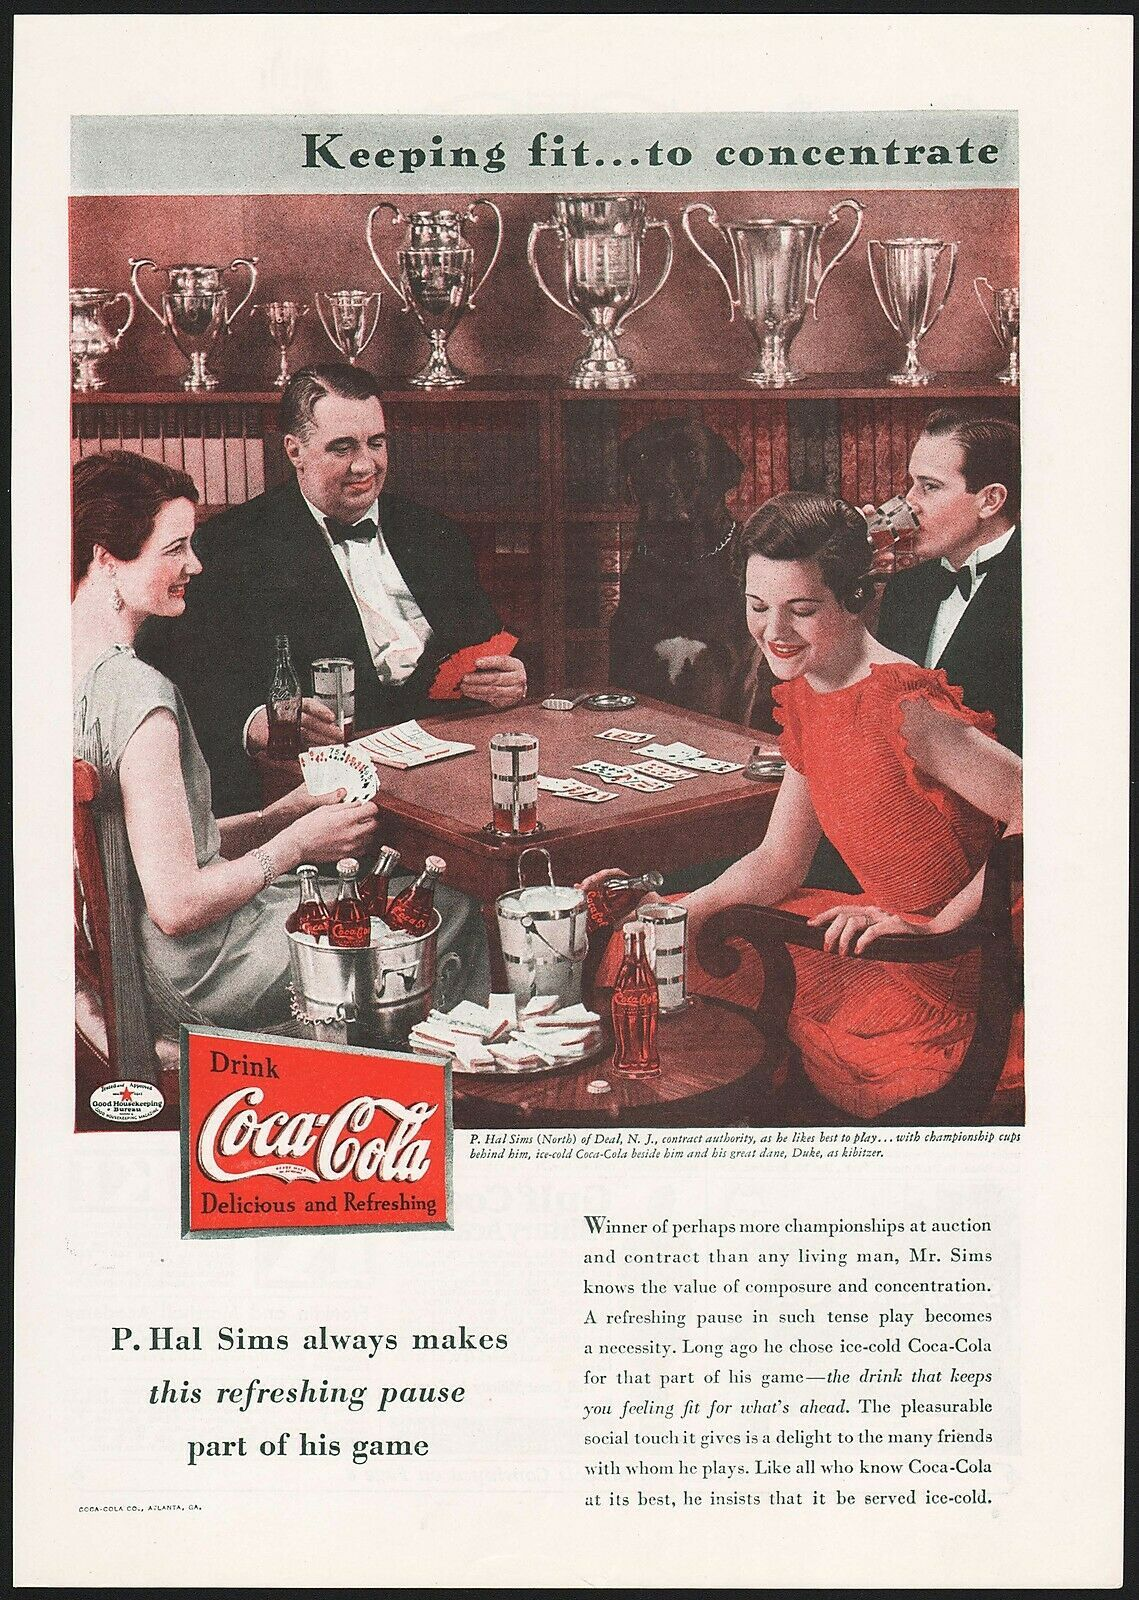 Primary image for Vintage magazine ad COCA COLA from 1934 picturing P Hal Sims on contract bridge